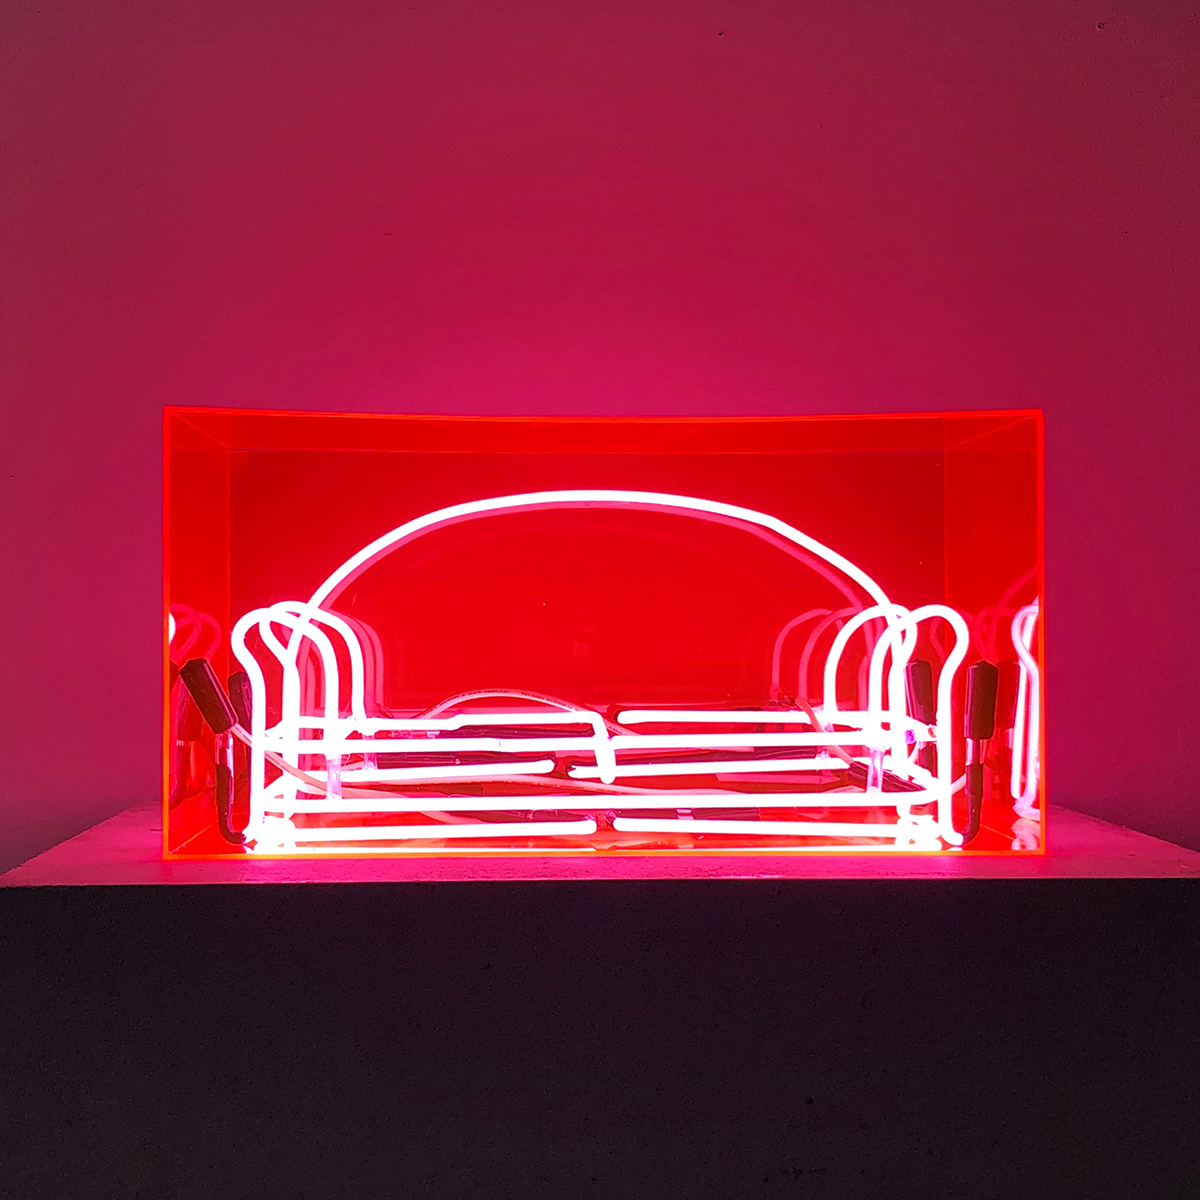 Couch, neon and acrylic box art by Isabel Monti.